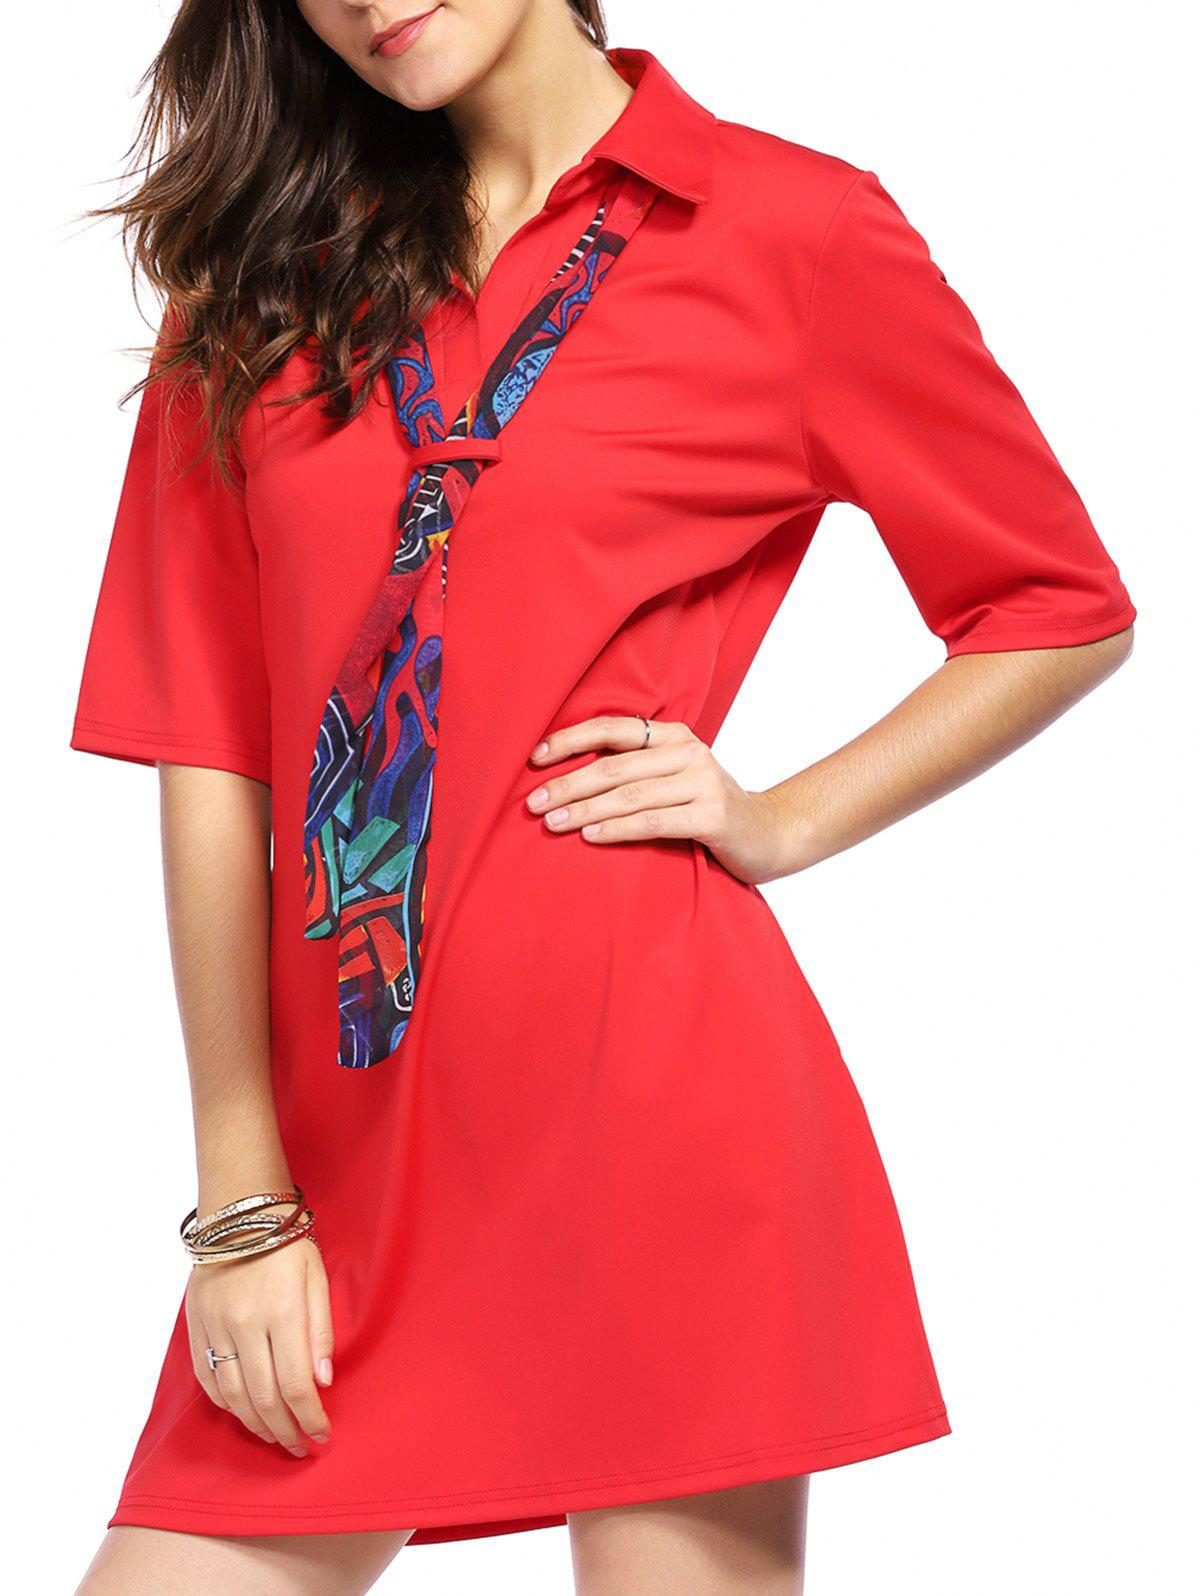 Stylish Women's Short Sleeve Shirt Dress with Scarf - RED 2XL